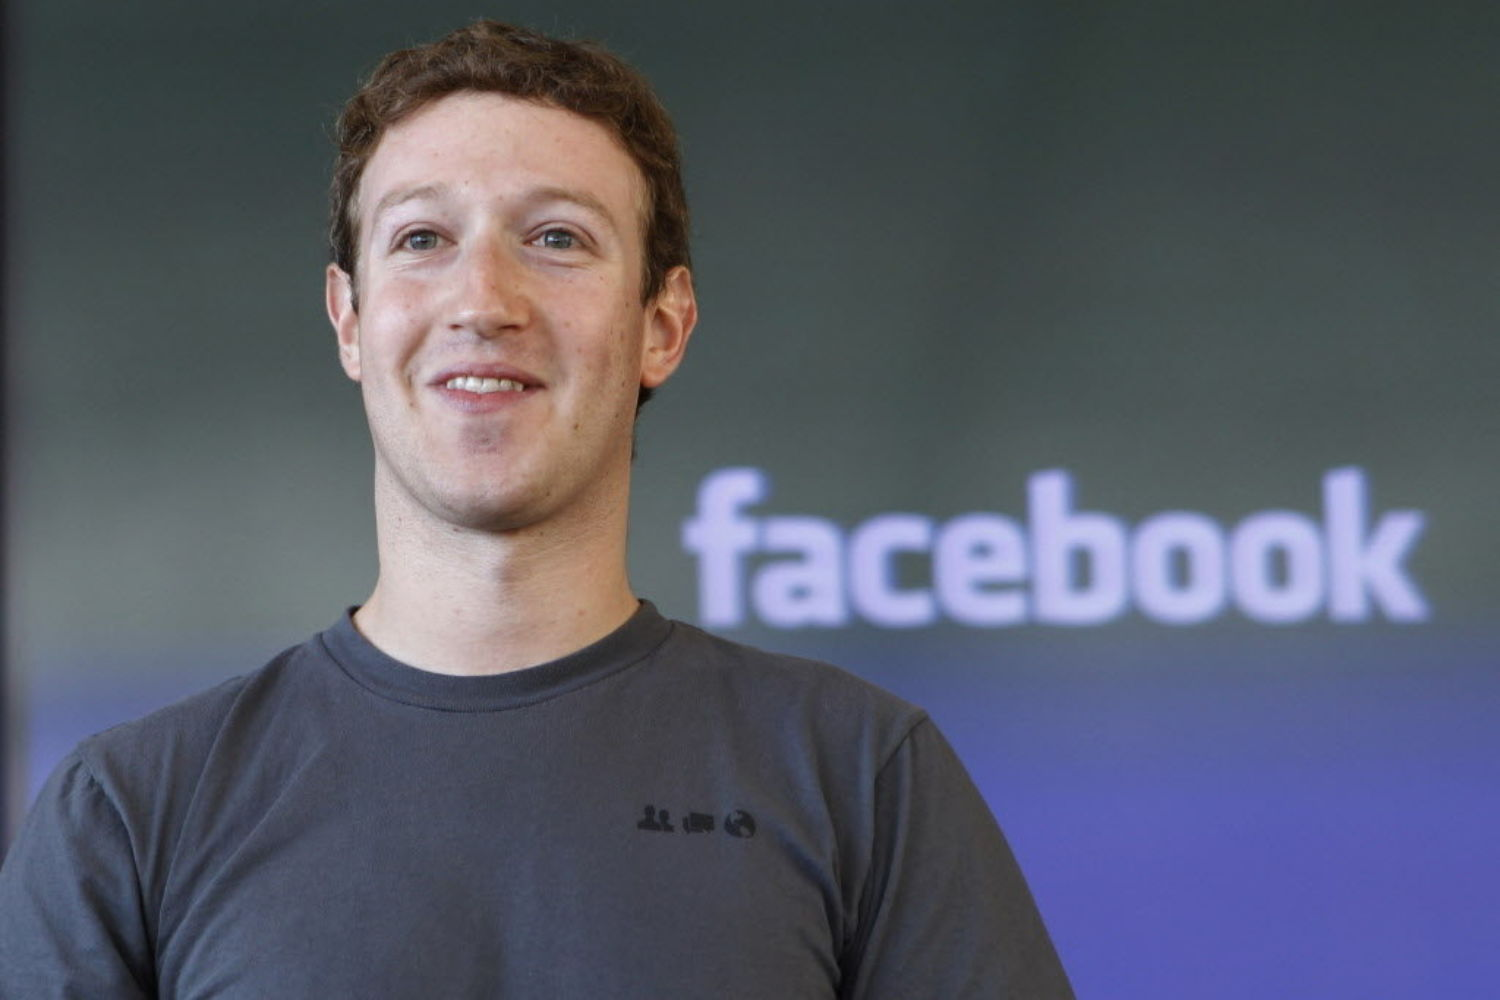 Do Gifted Kids Want To Be Zuckerberg Rather Than Einstein?